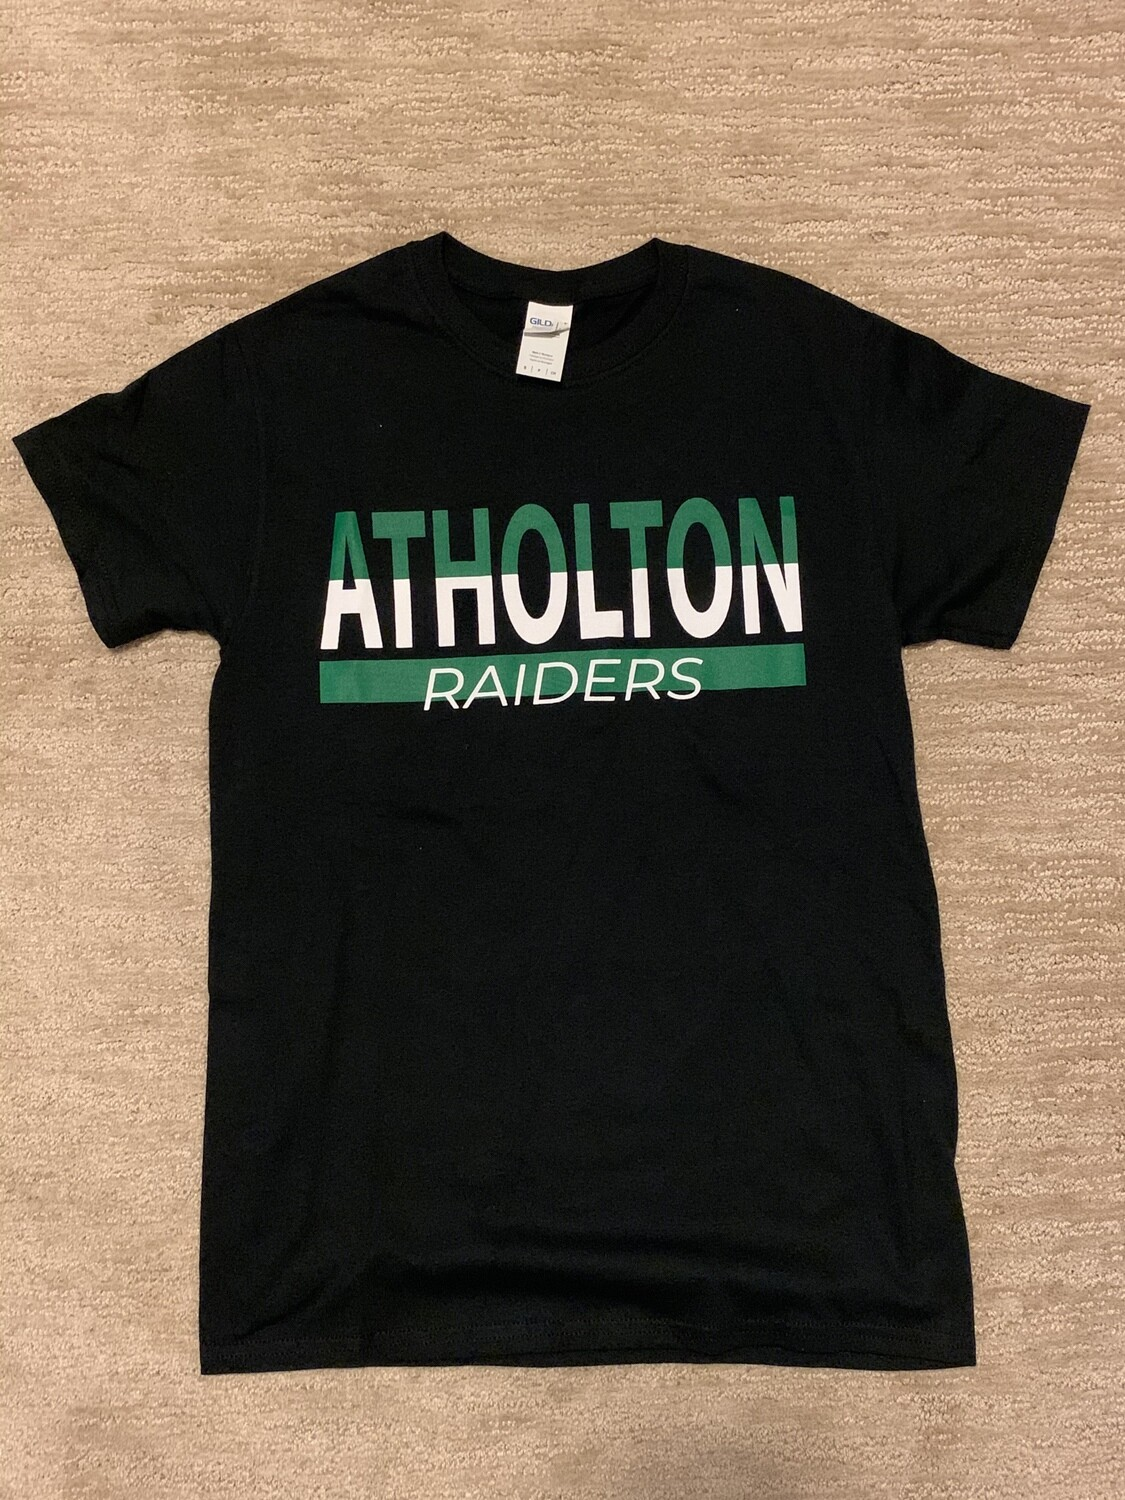 Atholton Raiders T shirt- medium, black